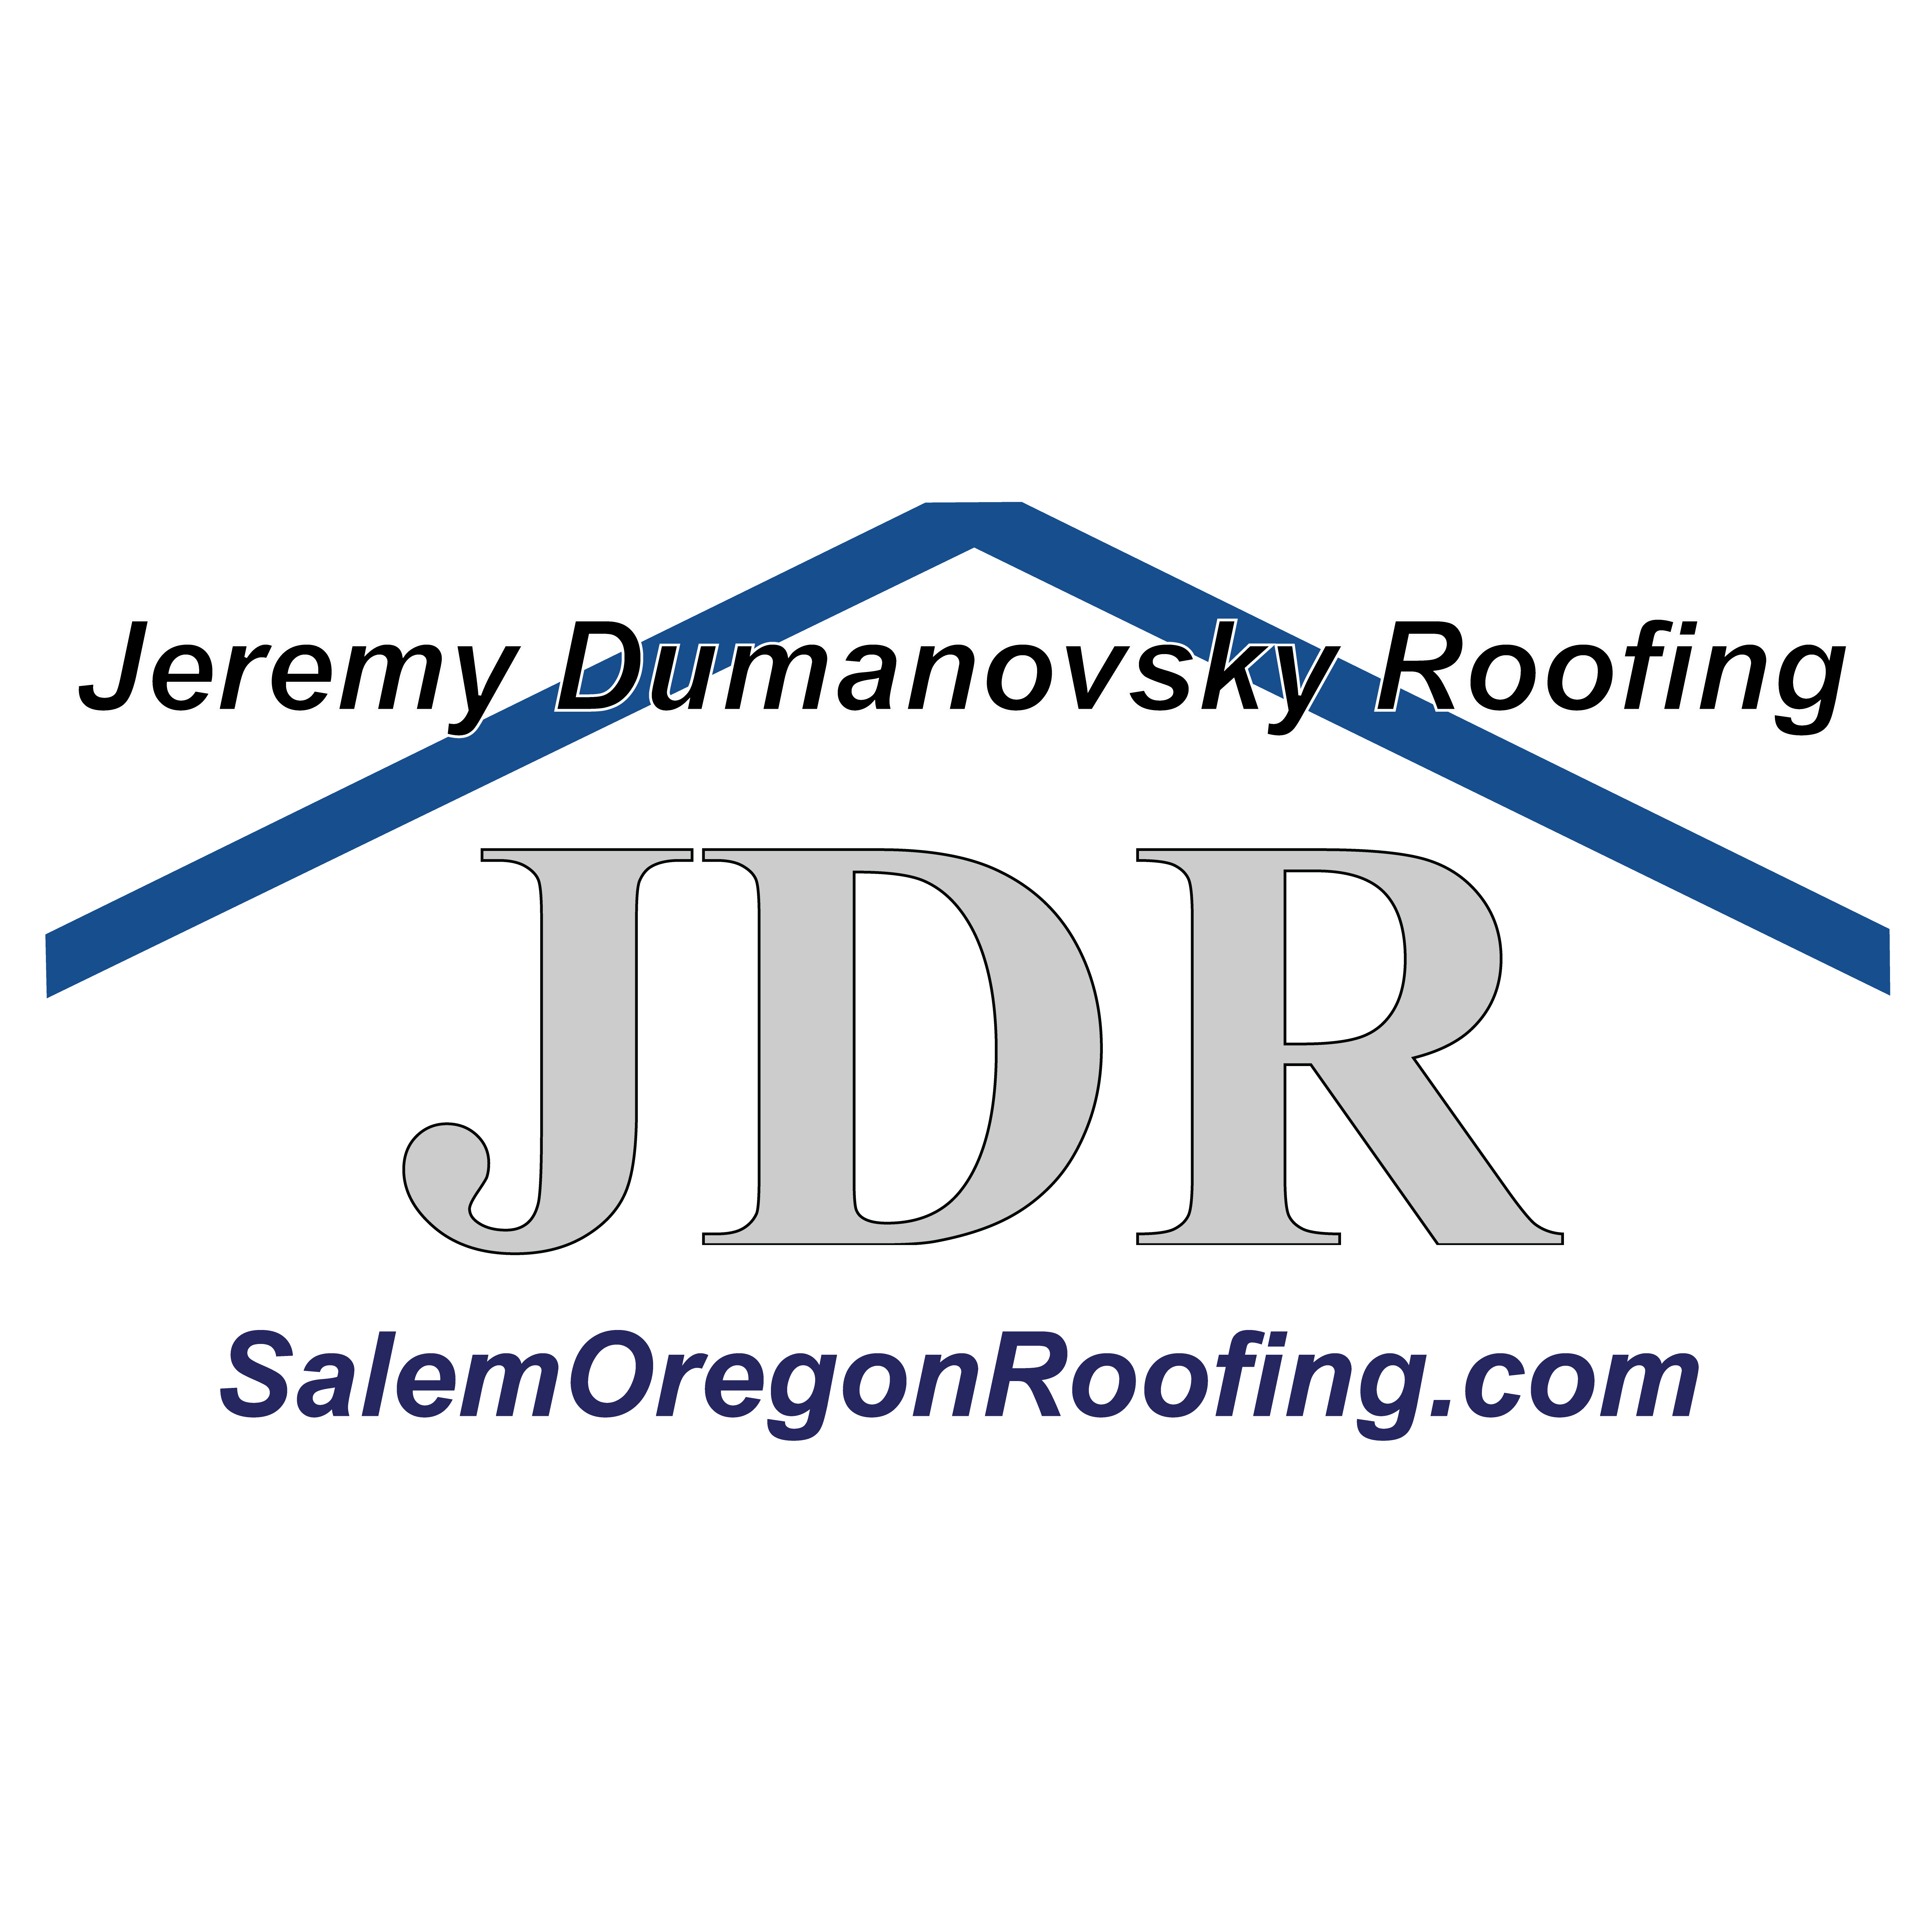 Jeremy Dumanovsky Roofing / Salem Oregon Roofing